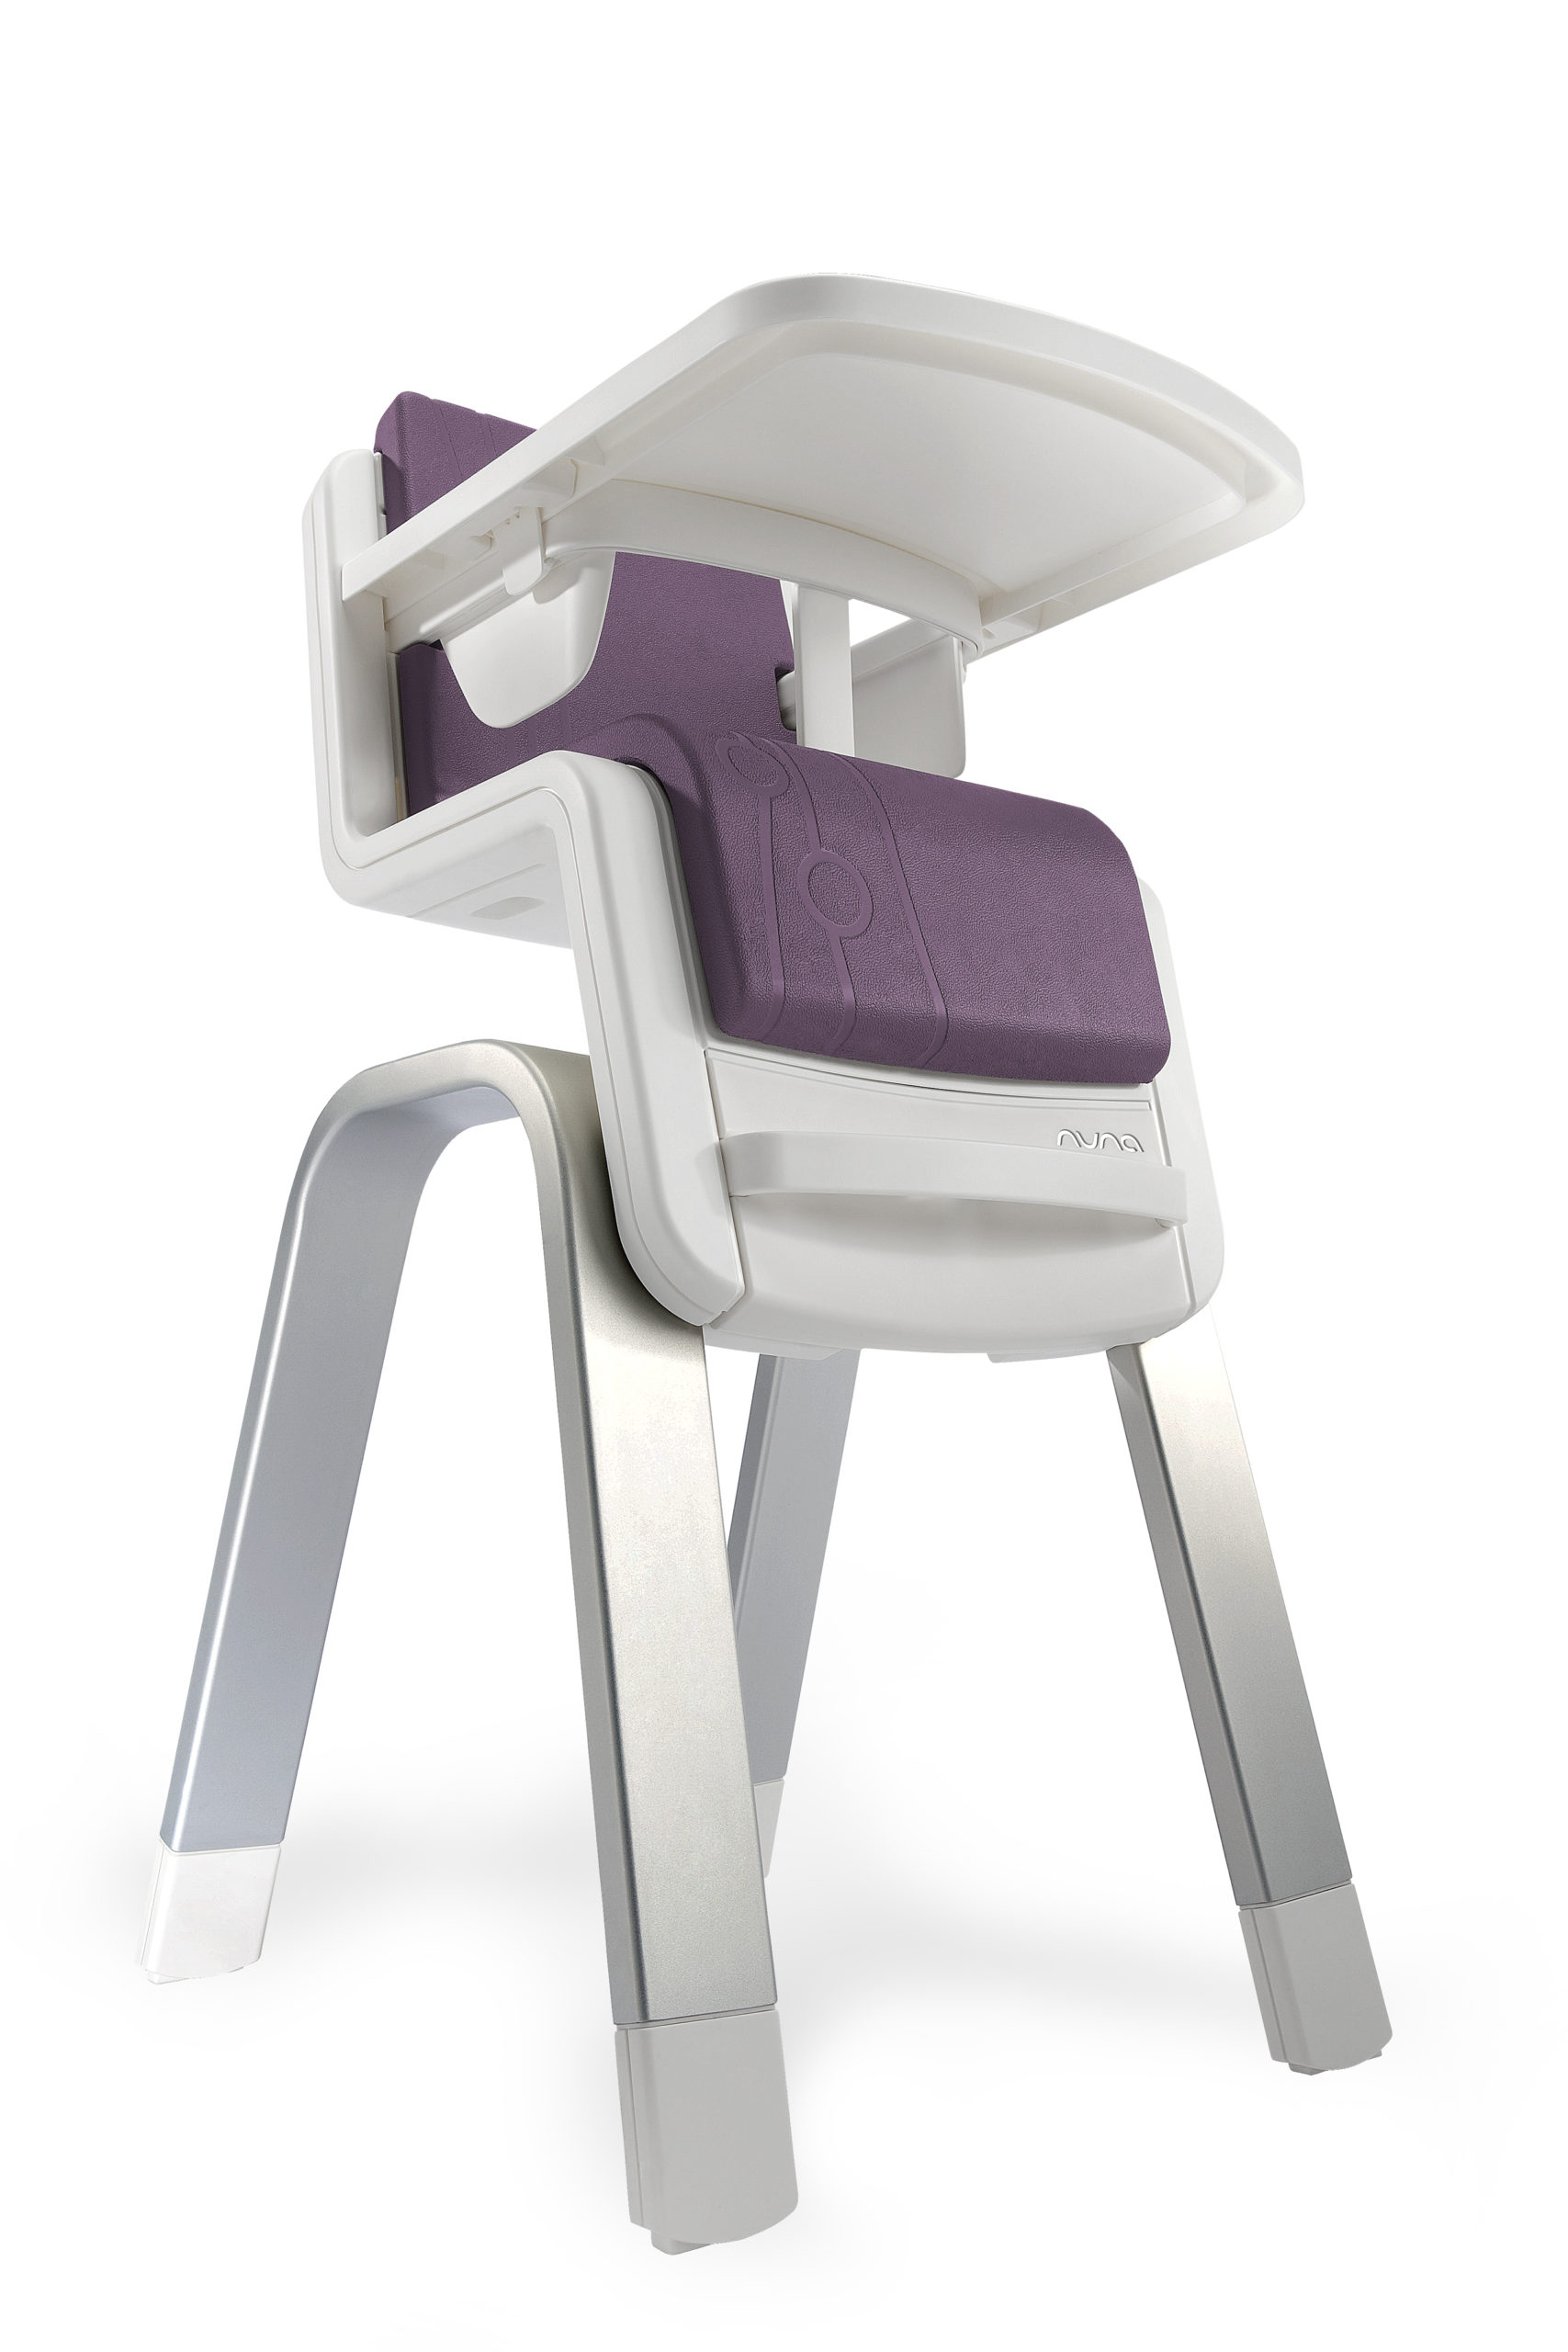 Awe Inspiring High Chair Booster Seat Round Up Caraccident5 Cool Chair Designs And Ideas Caraccident5Info